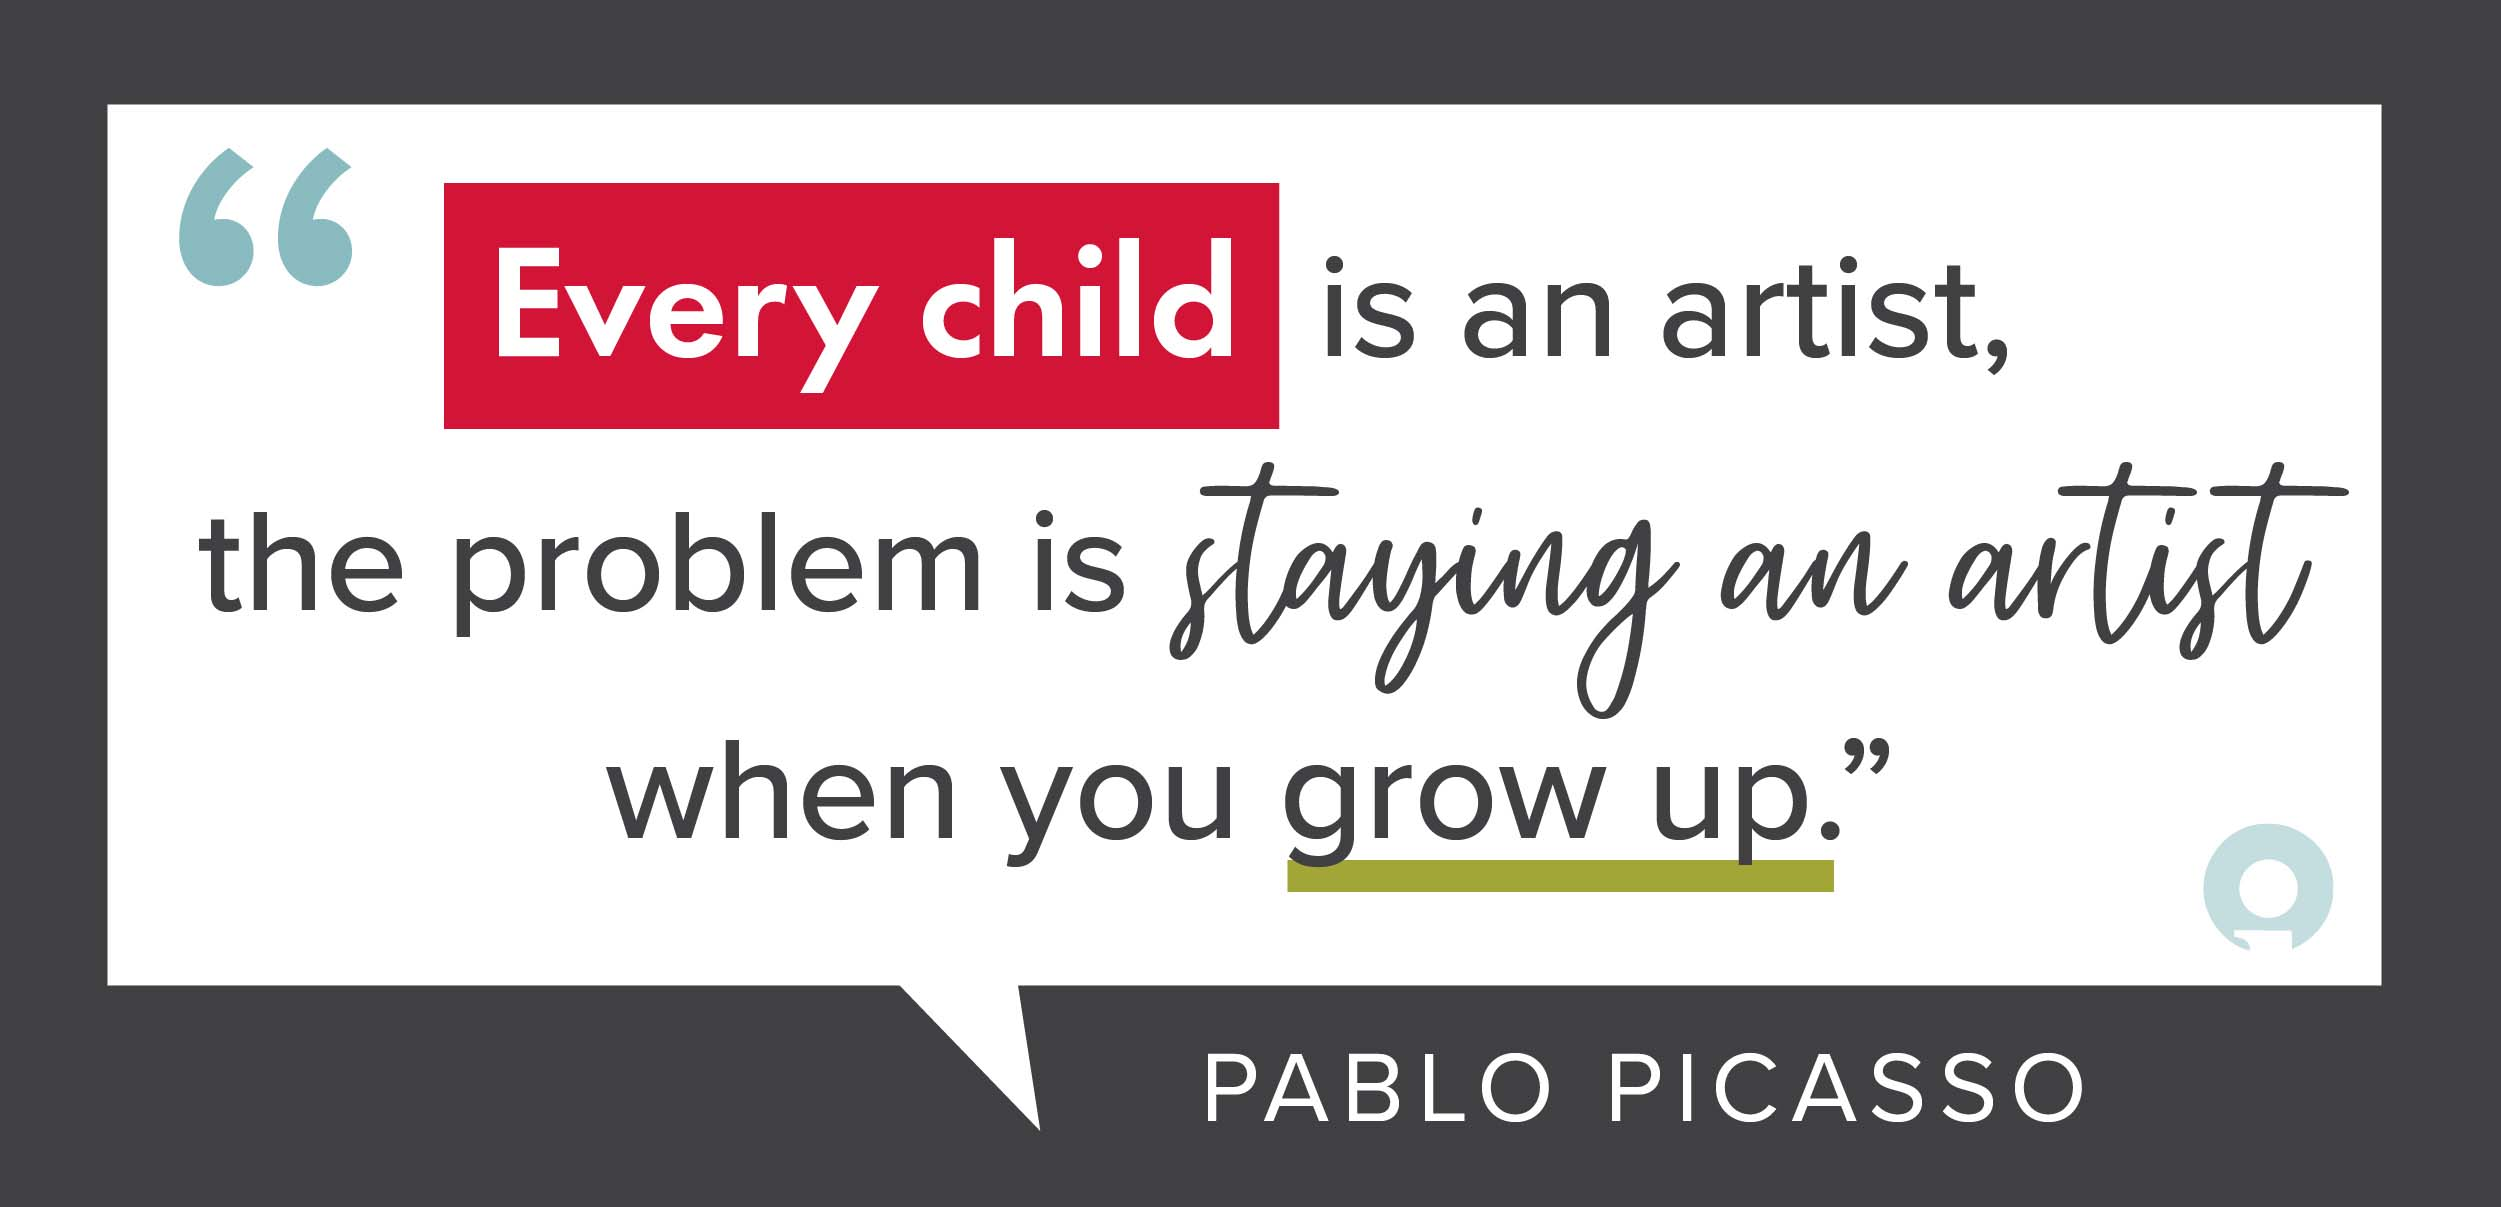 Every child is an artist Pablo Picasso Quote